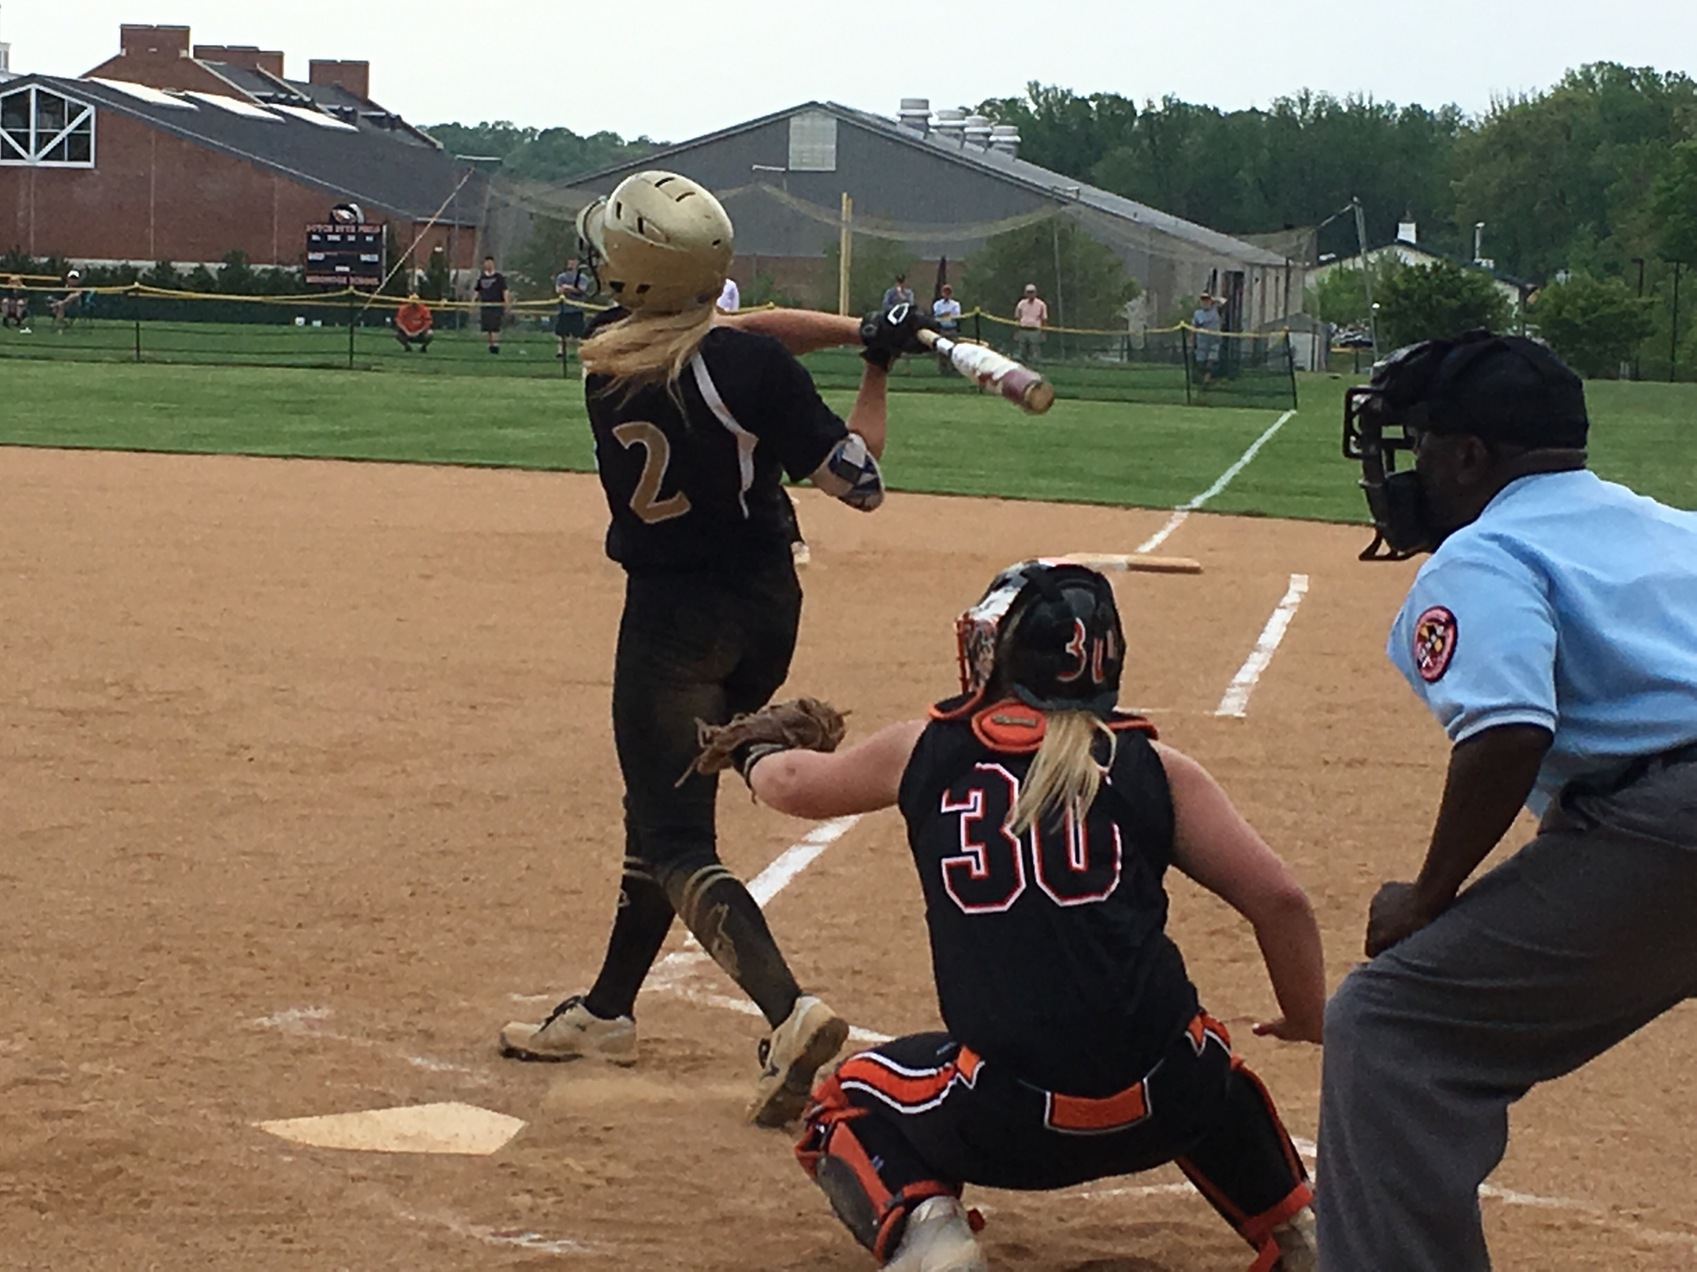 McDonogh edges John Carroll, earns a berth in A Conference softball final